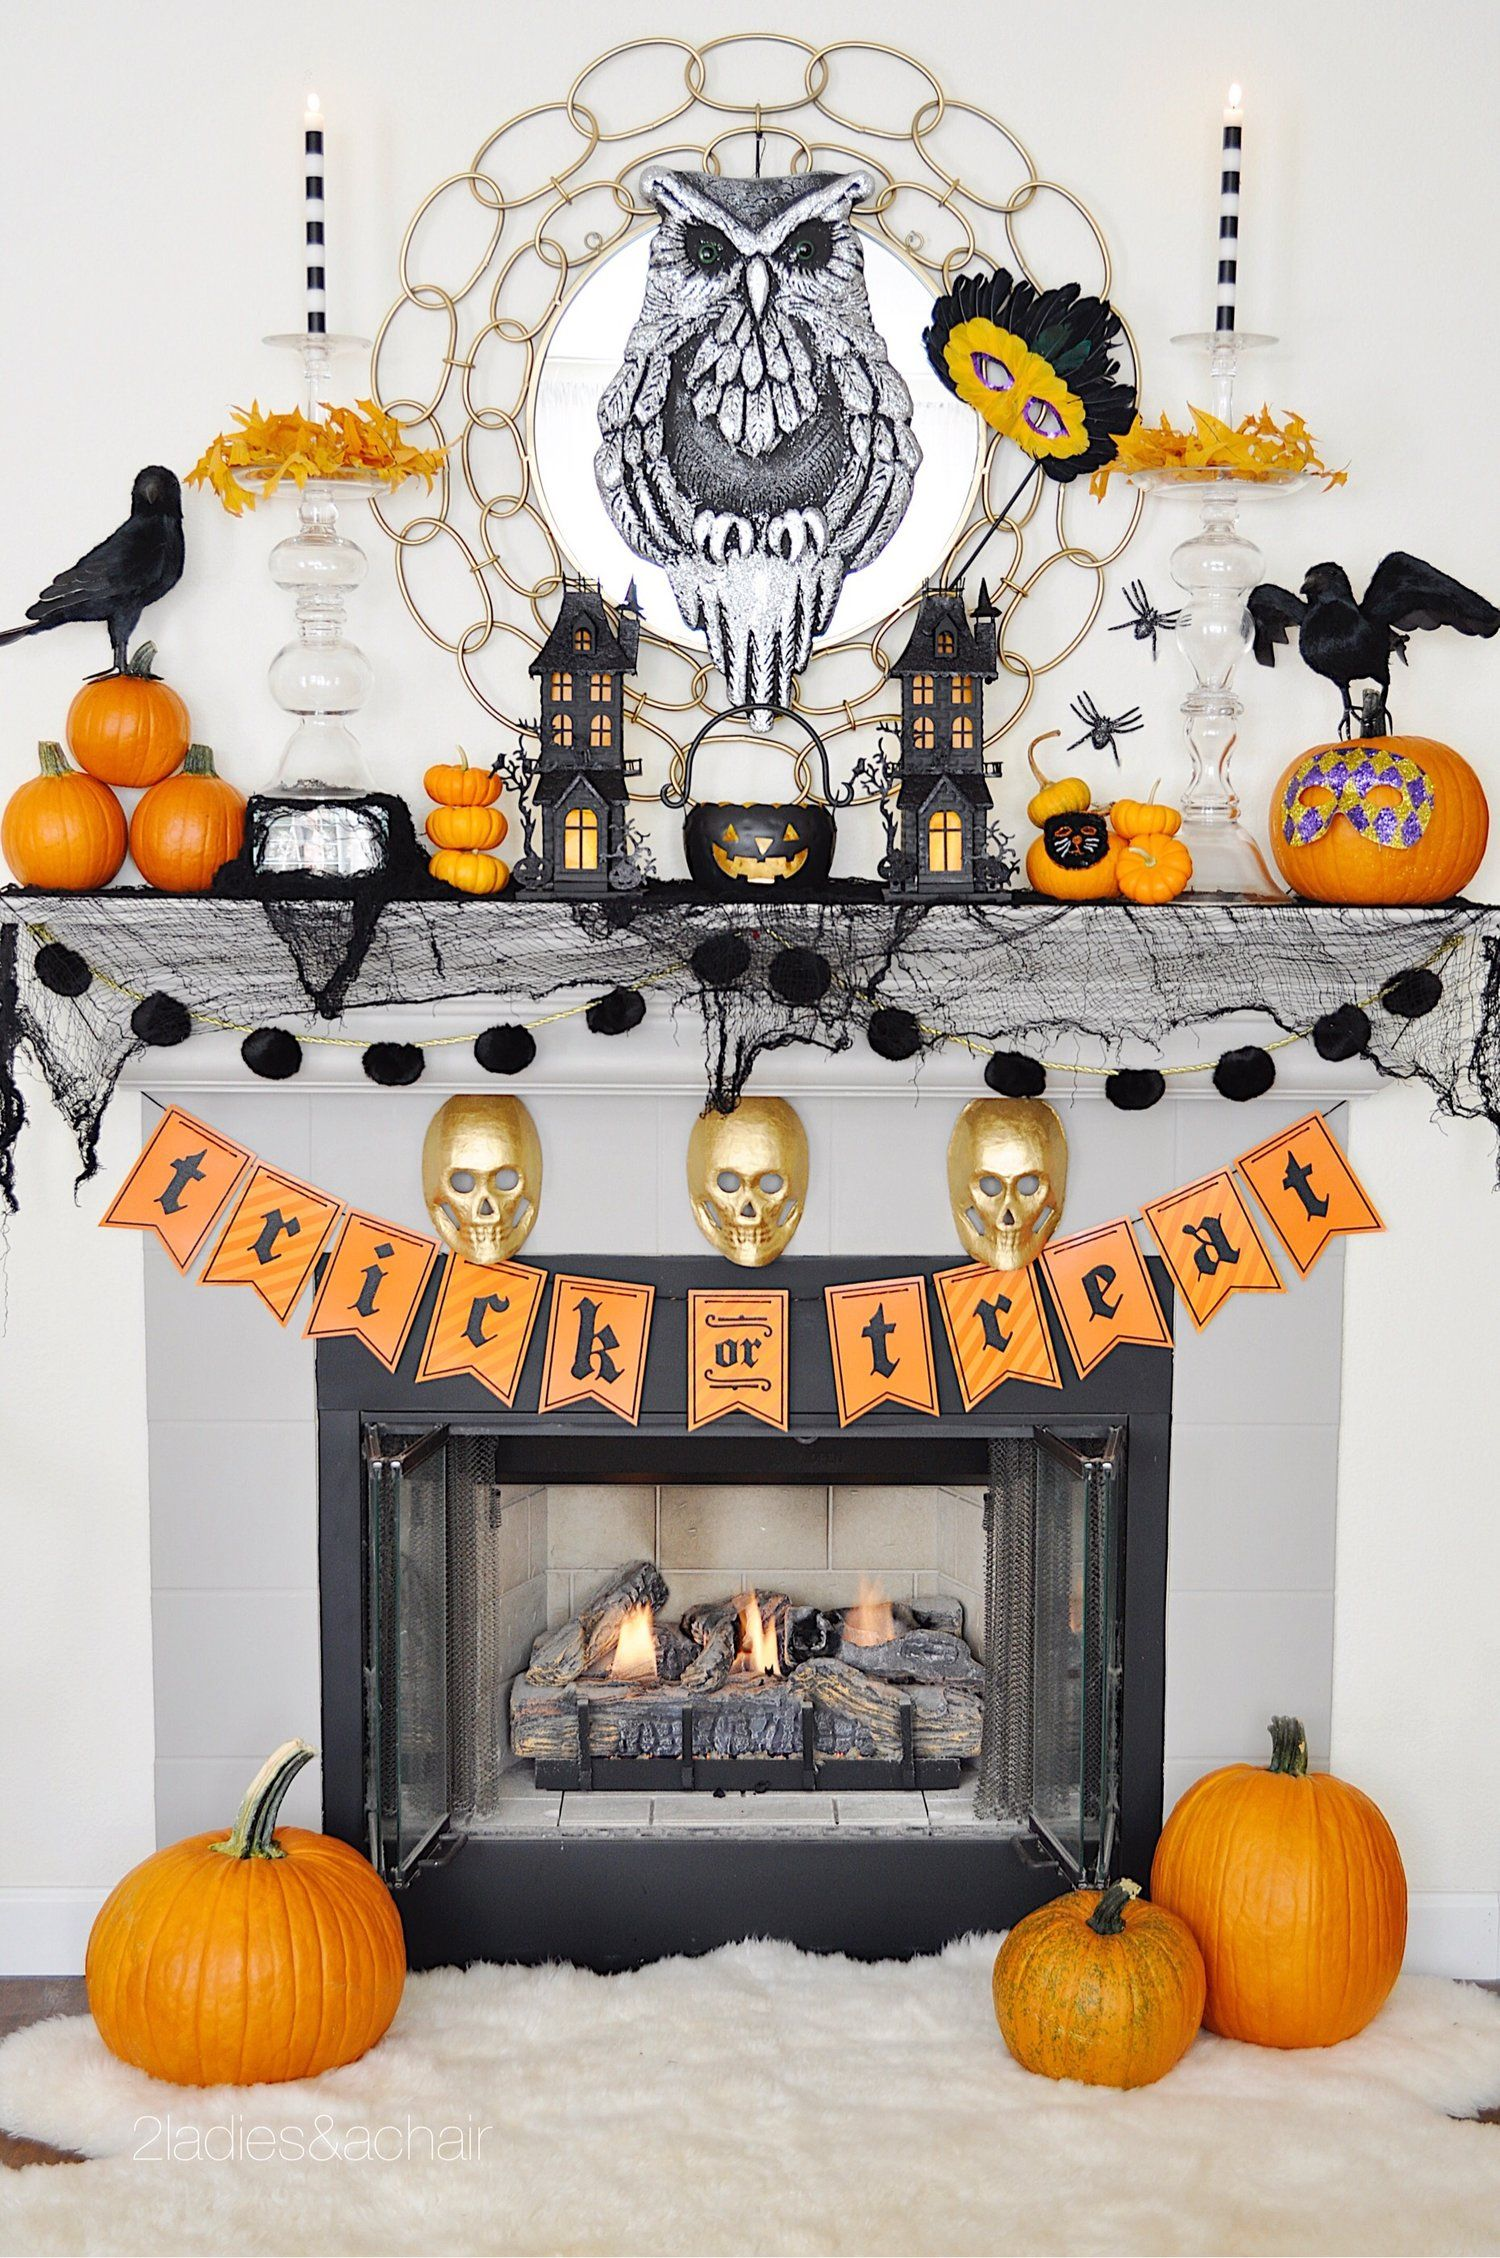 Oct 4 My Spooky Halloween Mantel Decorations Spooky halloween - Spooky Halloween Decorations